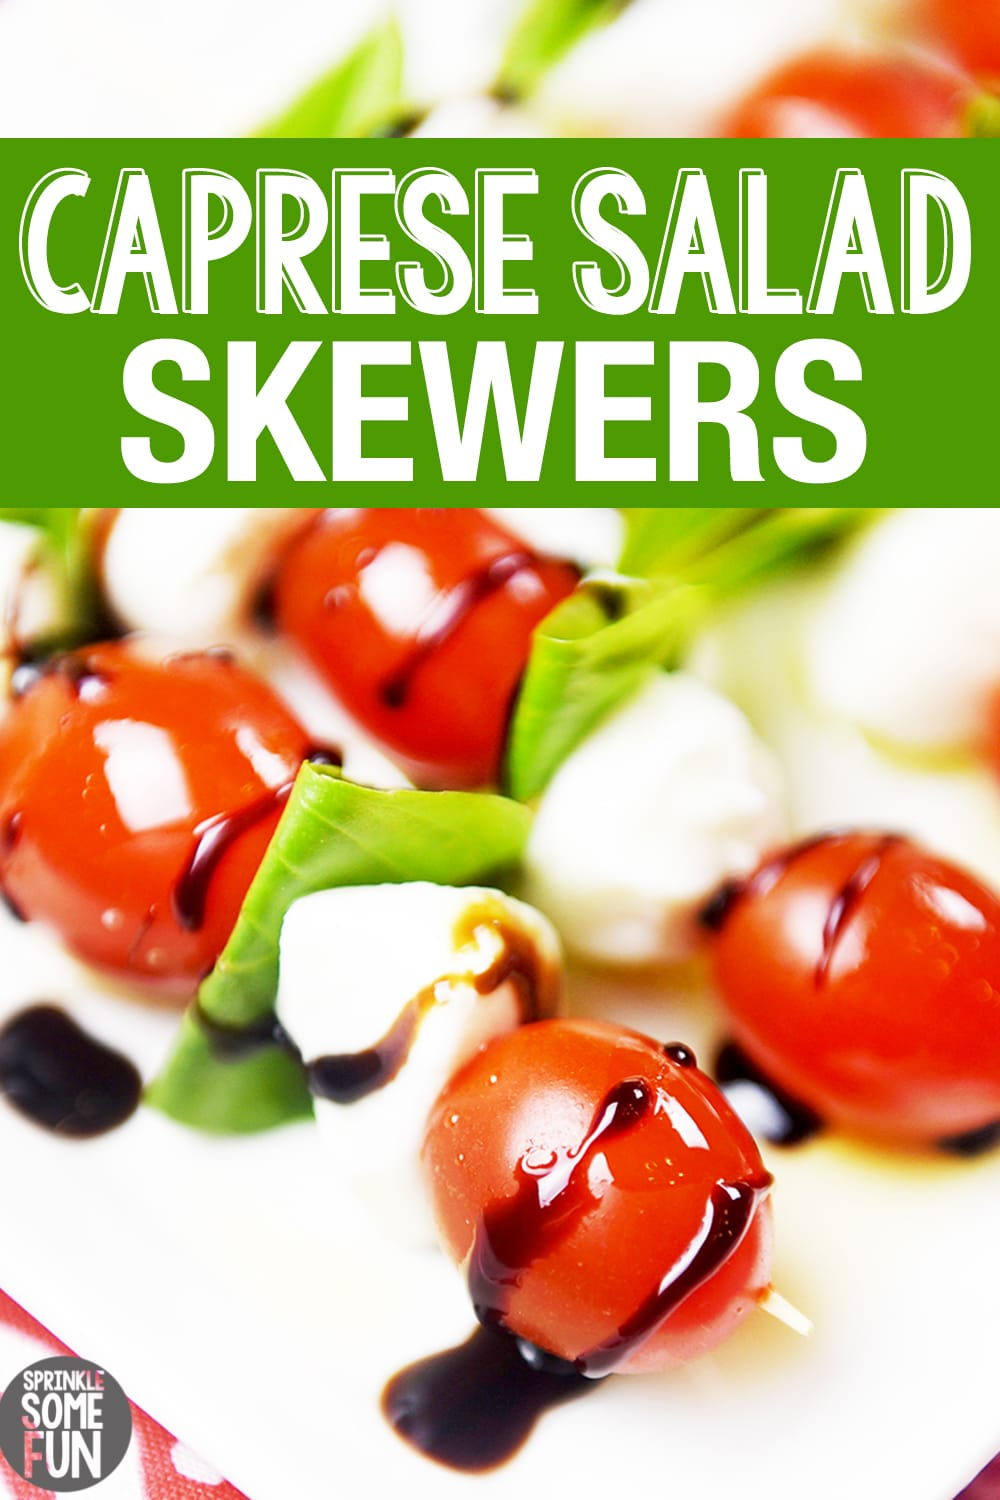 Caprese Salad Skewers are easy to serve and are always a crowd pleaser.The flavors of tomato basil and mozzarella mingle together to make one perfect bite. #capreseskewers #caprese #capresesaladskewers #capreseskewersbalsamic #balsamic #basil #tomato #capresesalad #italian #appetizer #capreseappetizer #partybite #bitesized #saladskewer #party #recipe #partyappetizer #easyappetizer